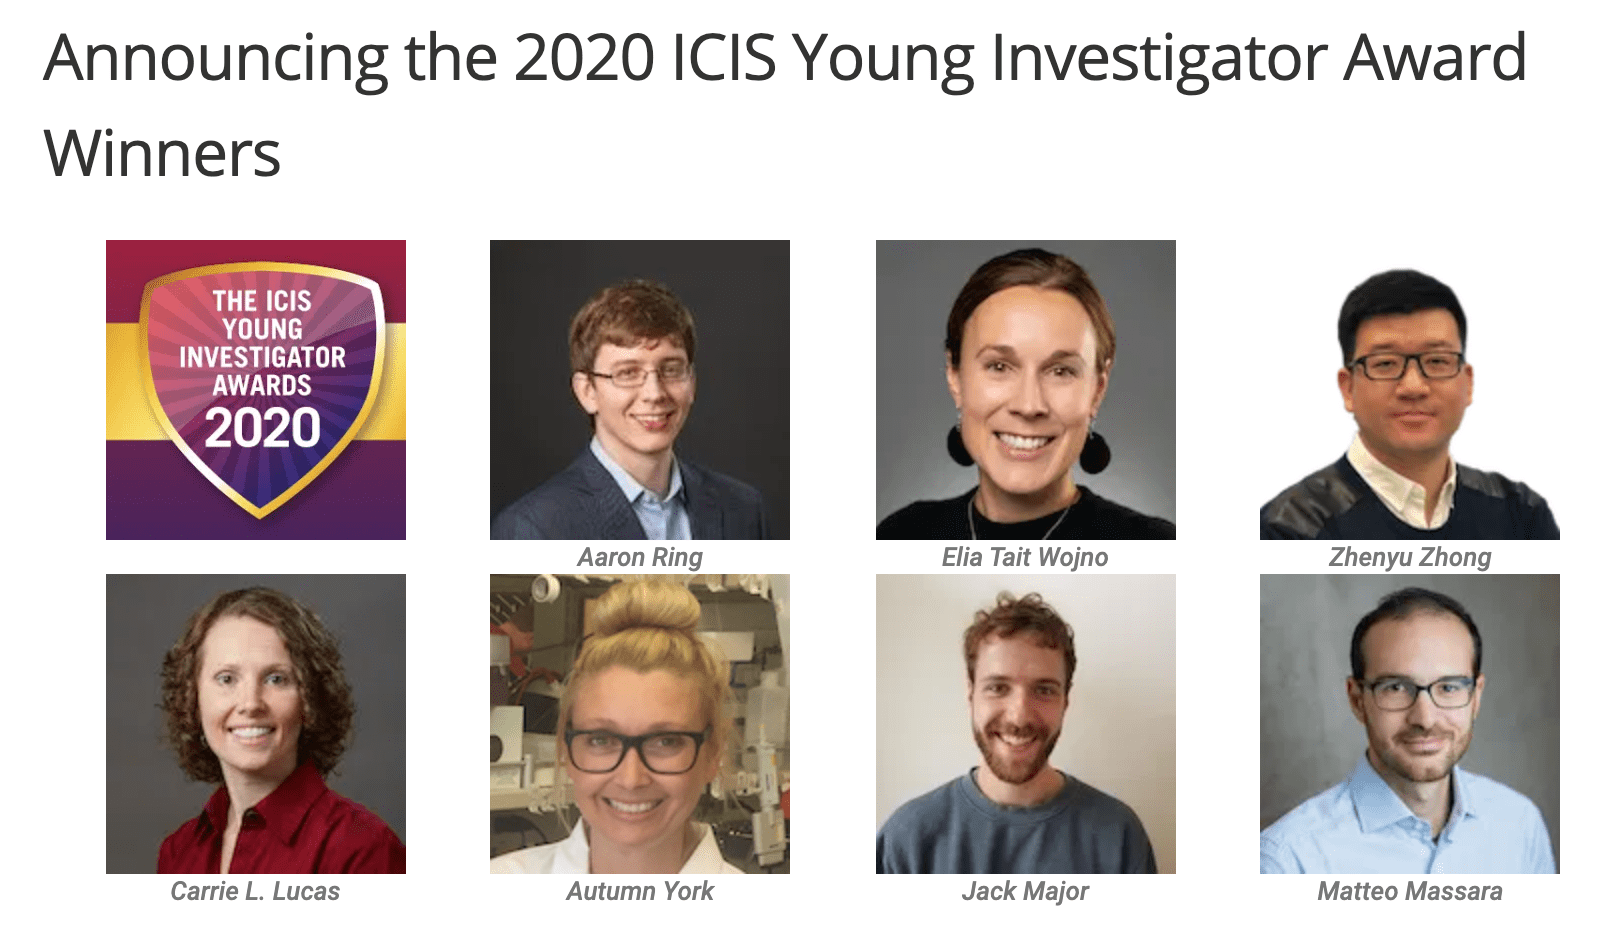 Announcing the 2020 ICIS Young Investigator Award Winners